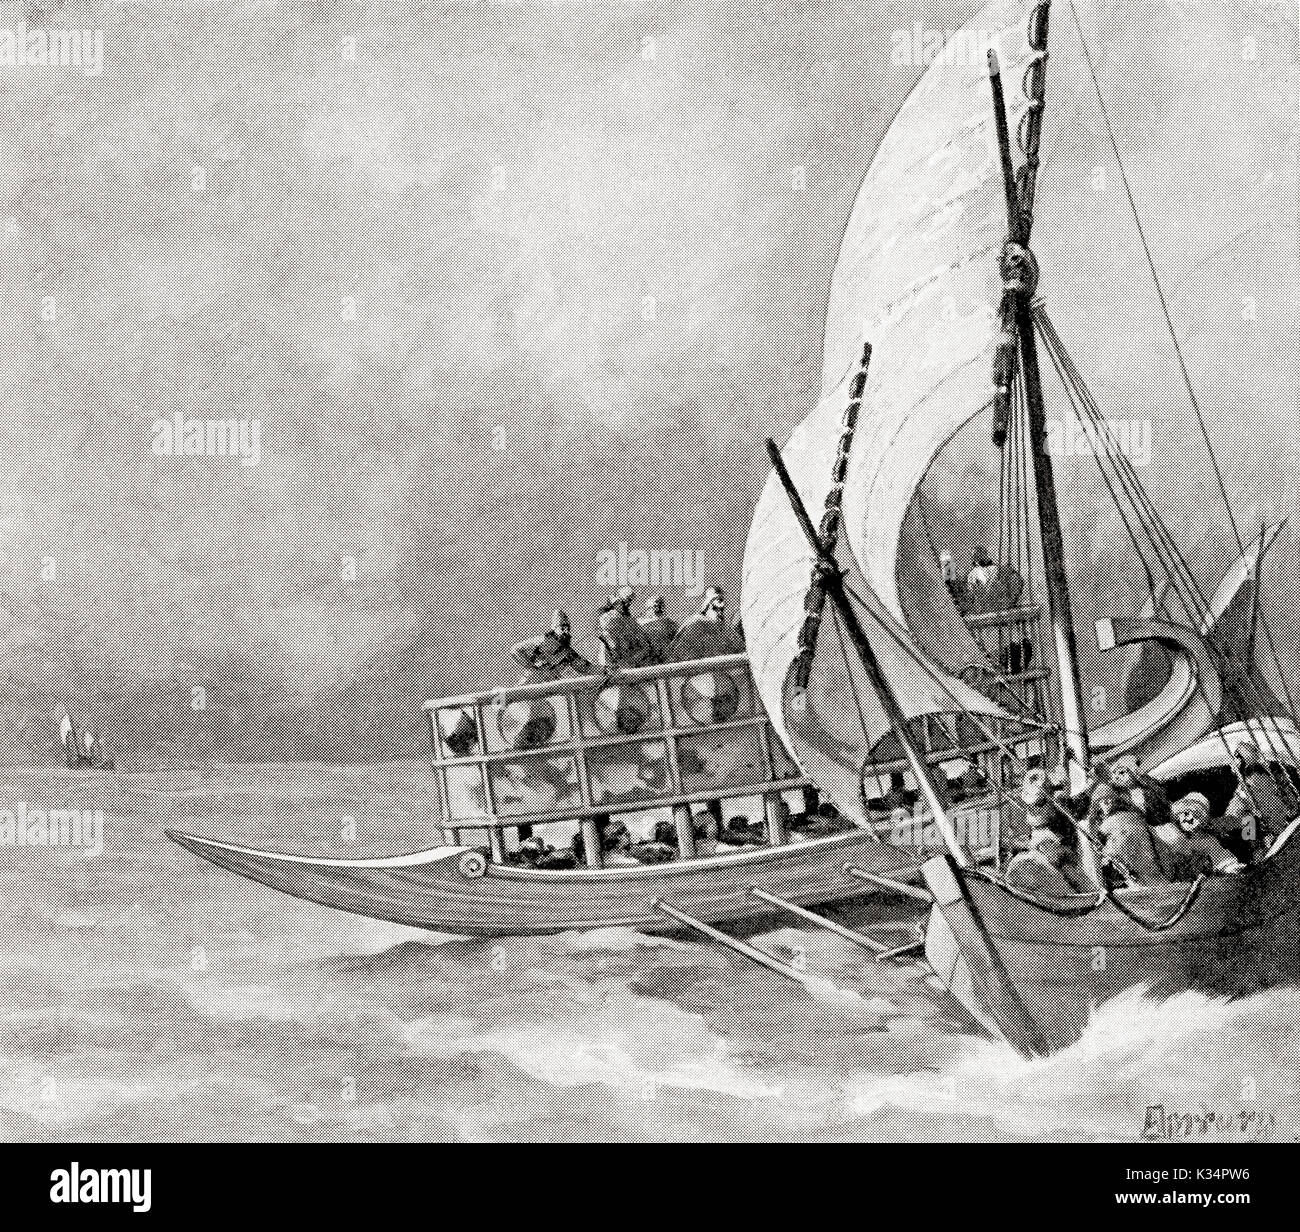 The capture, by Assyrians, of an Ionian pirate ship, 8th century BC.  From Hutchinson's History of the Nations, published 1915. - Stock Image